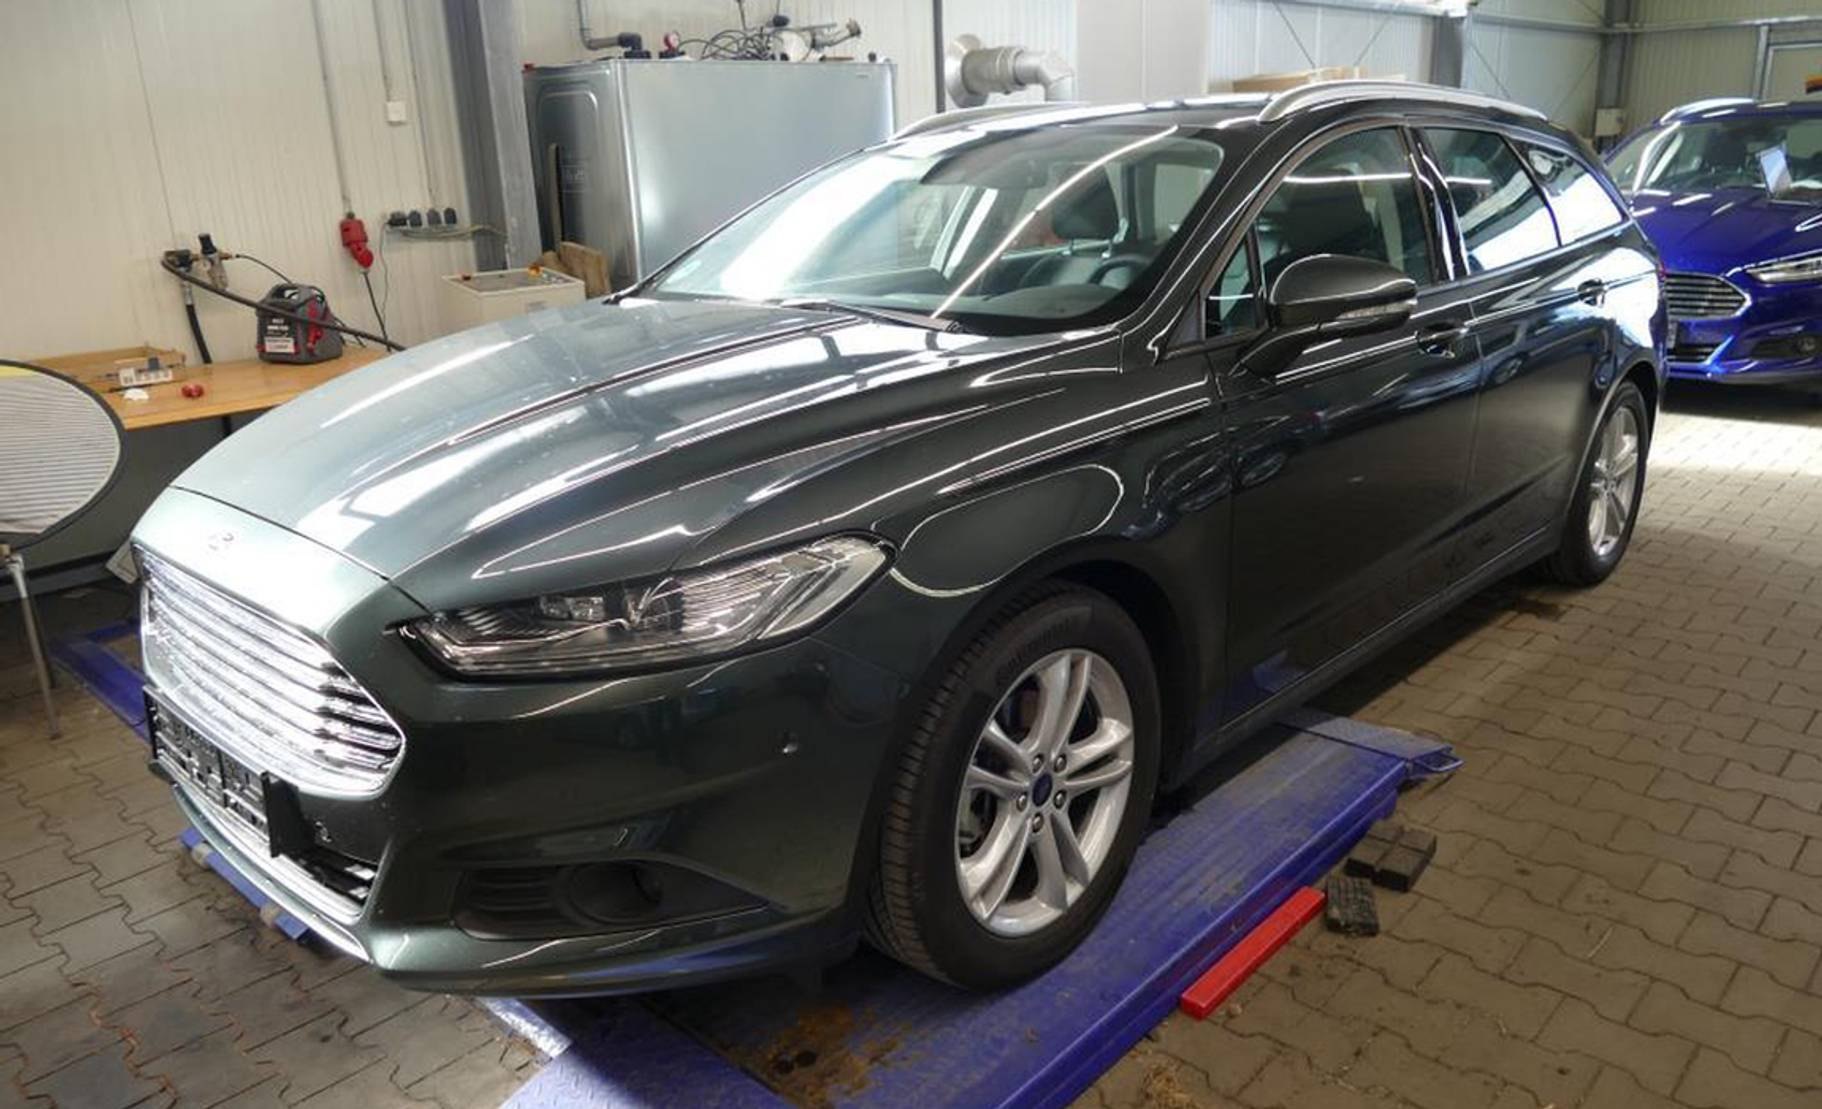 Ford Mondeo Turnier 2.0 TDCi Start-Stop Business Edition (708790) detail1